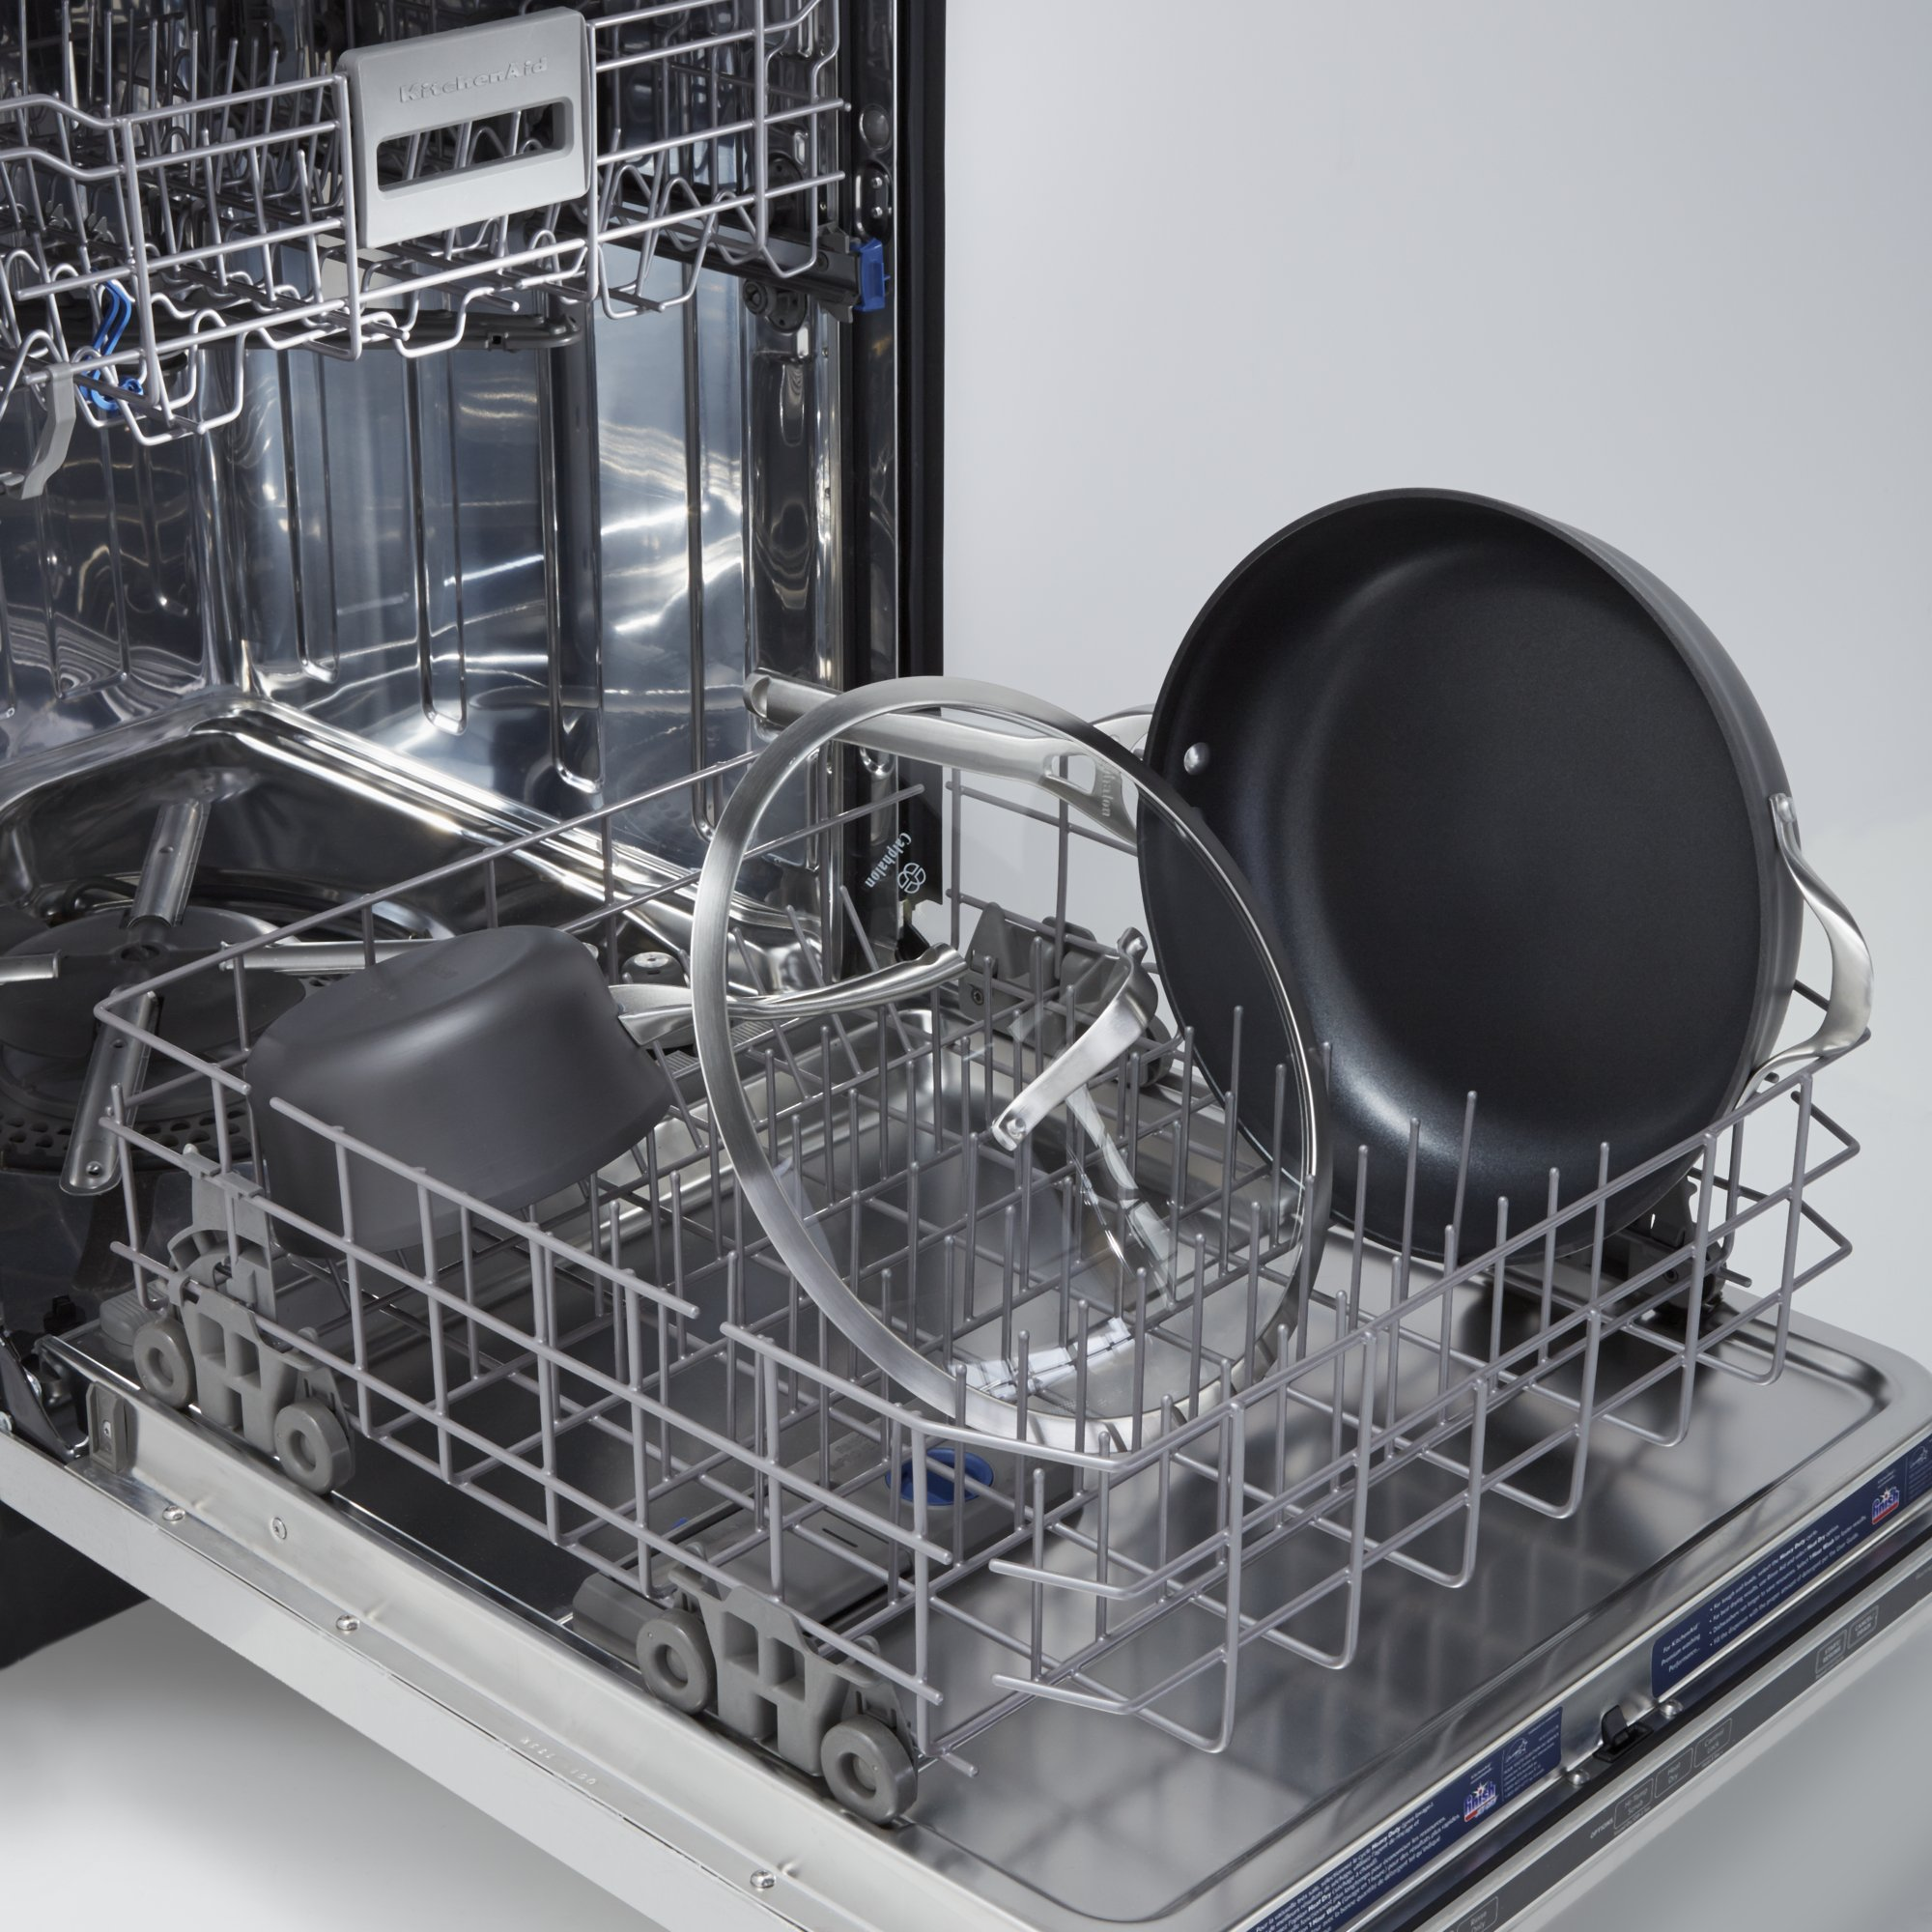 dishwasher and oven safe the calphalon nonstick